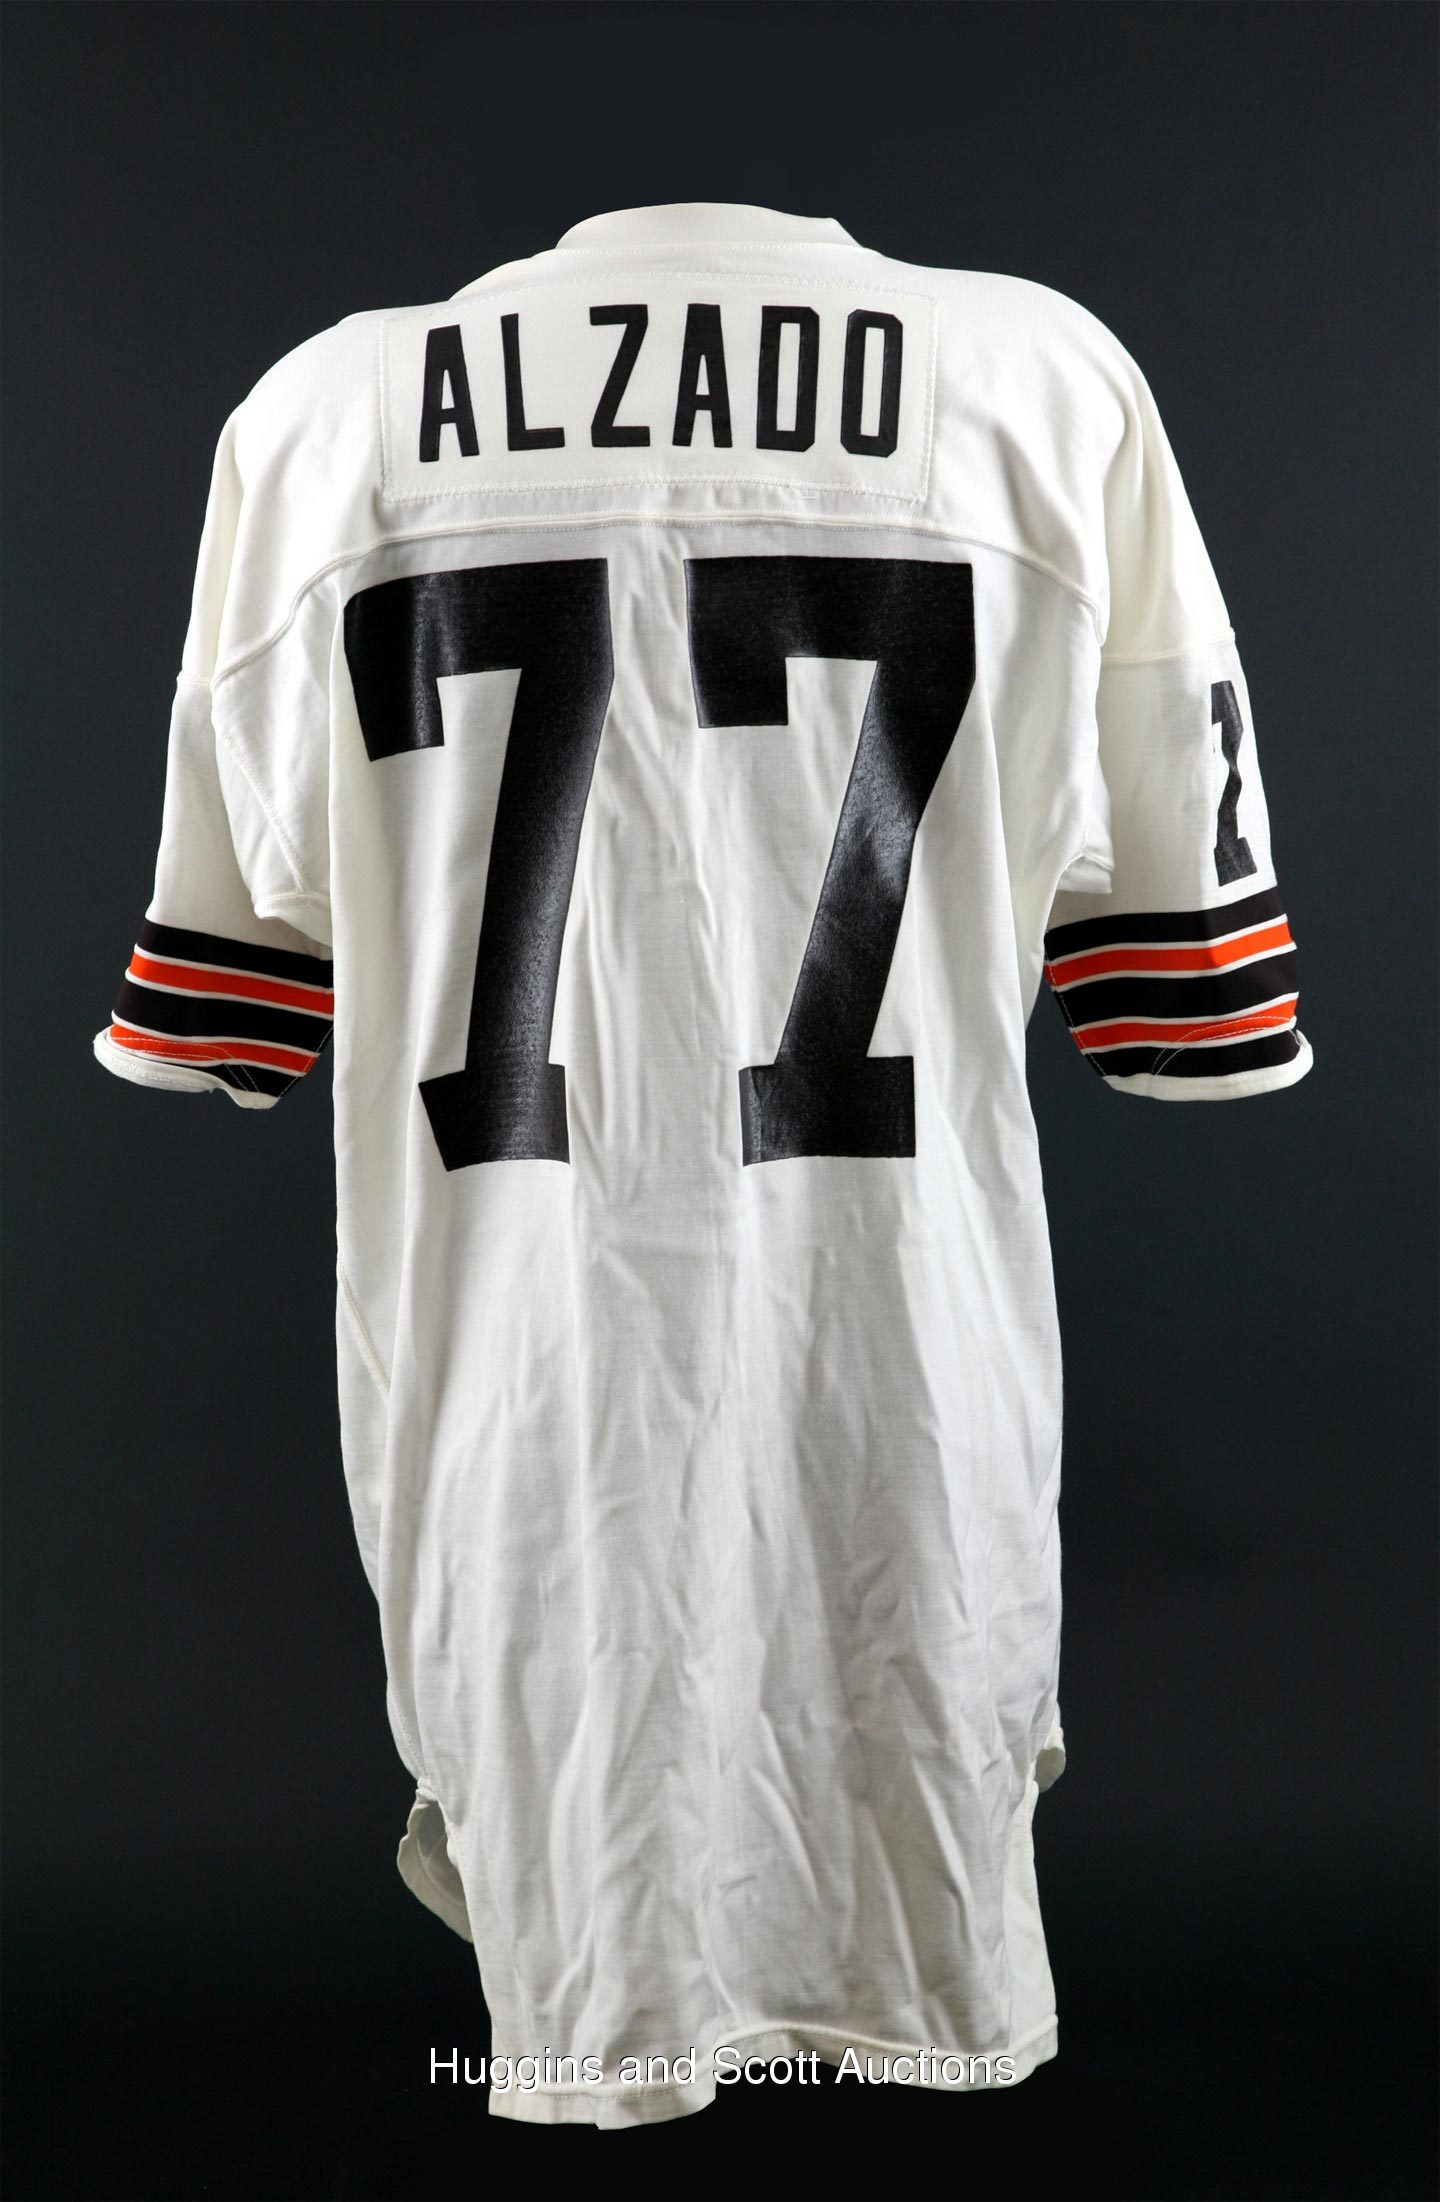 1979 1980 Lyle Alzado Game Worn Cleveland Browns Jersey